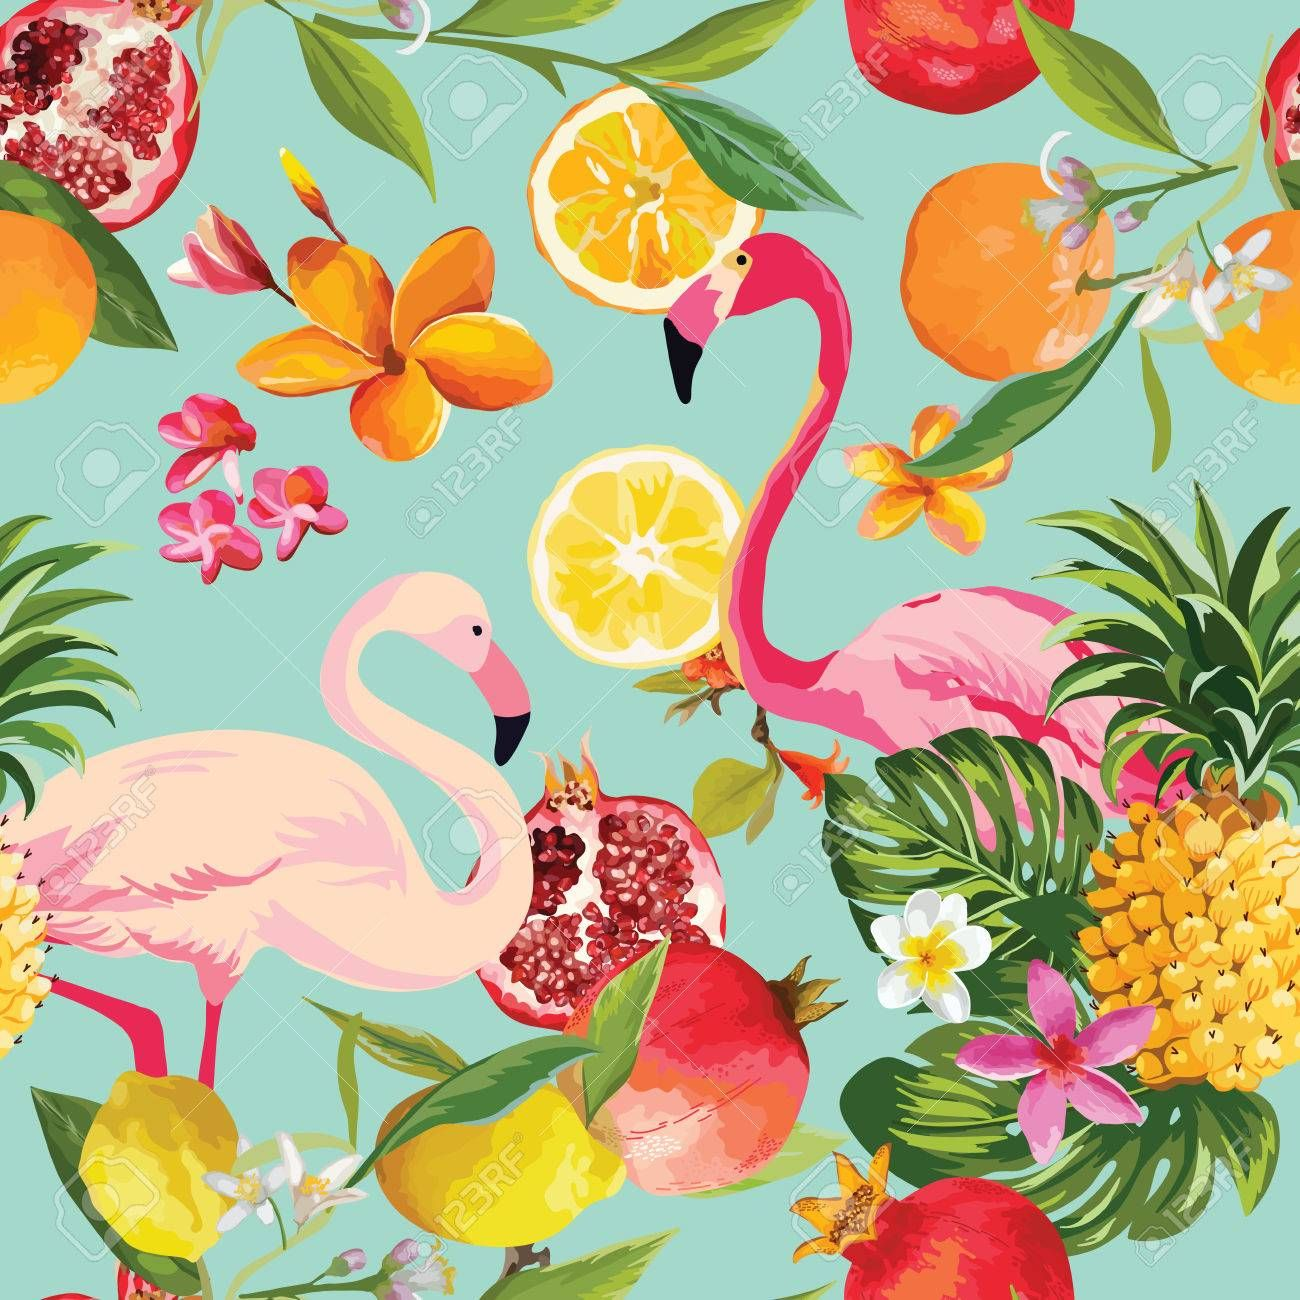 Seamless Tropical Fruits and Flamingo Pattern in Vector. Pomegranate, Lemon, Ora...